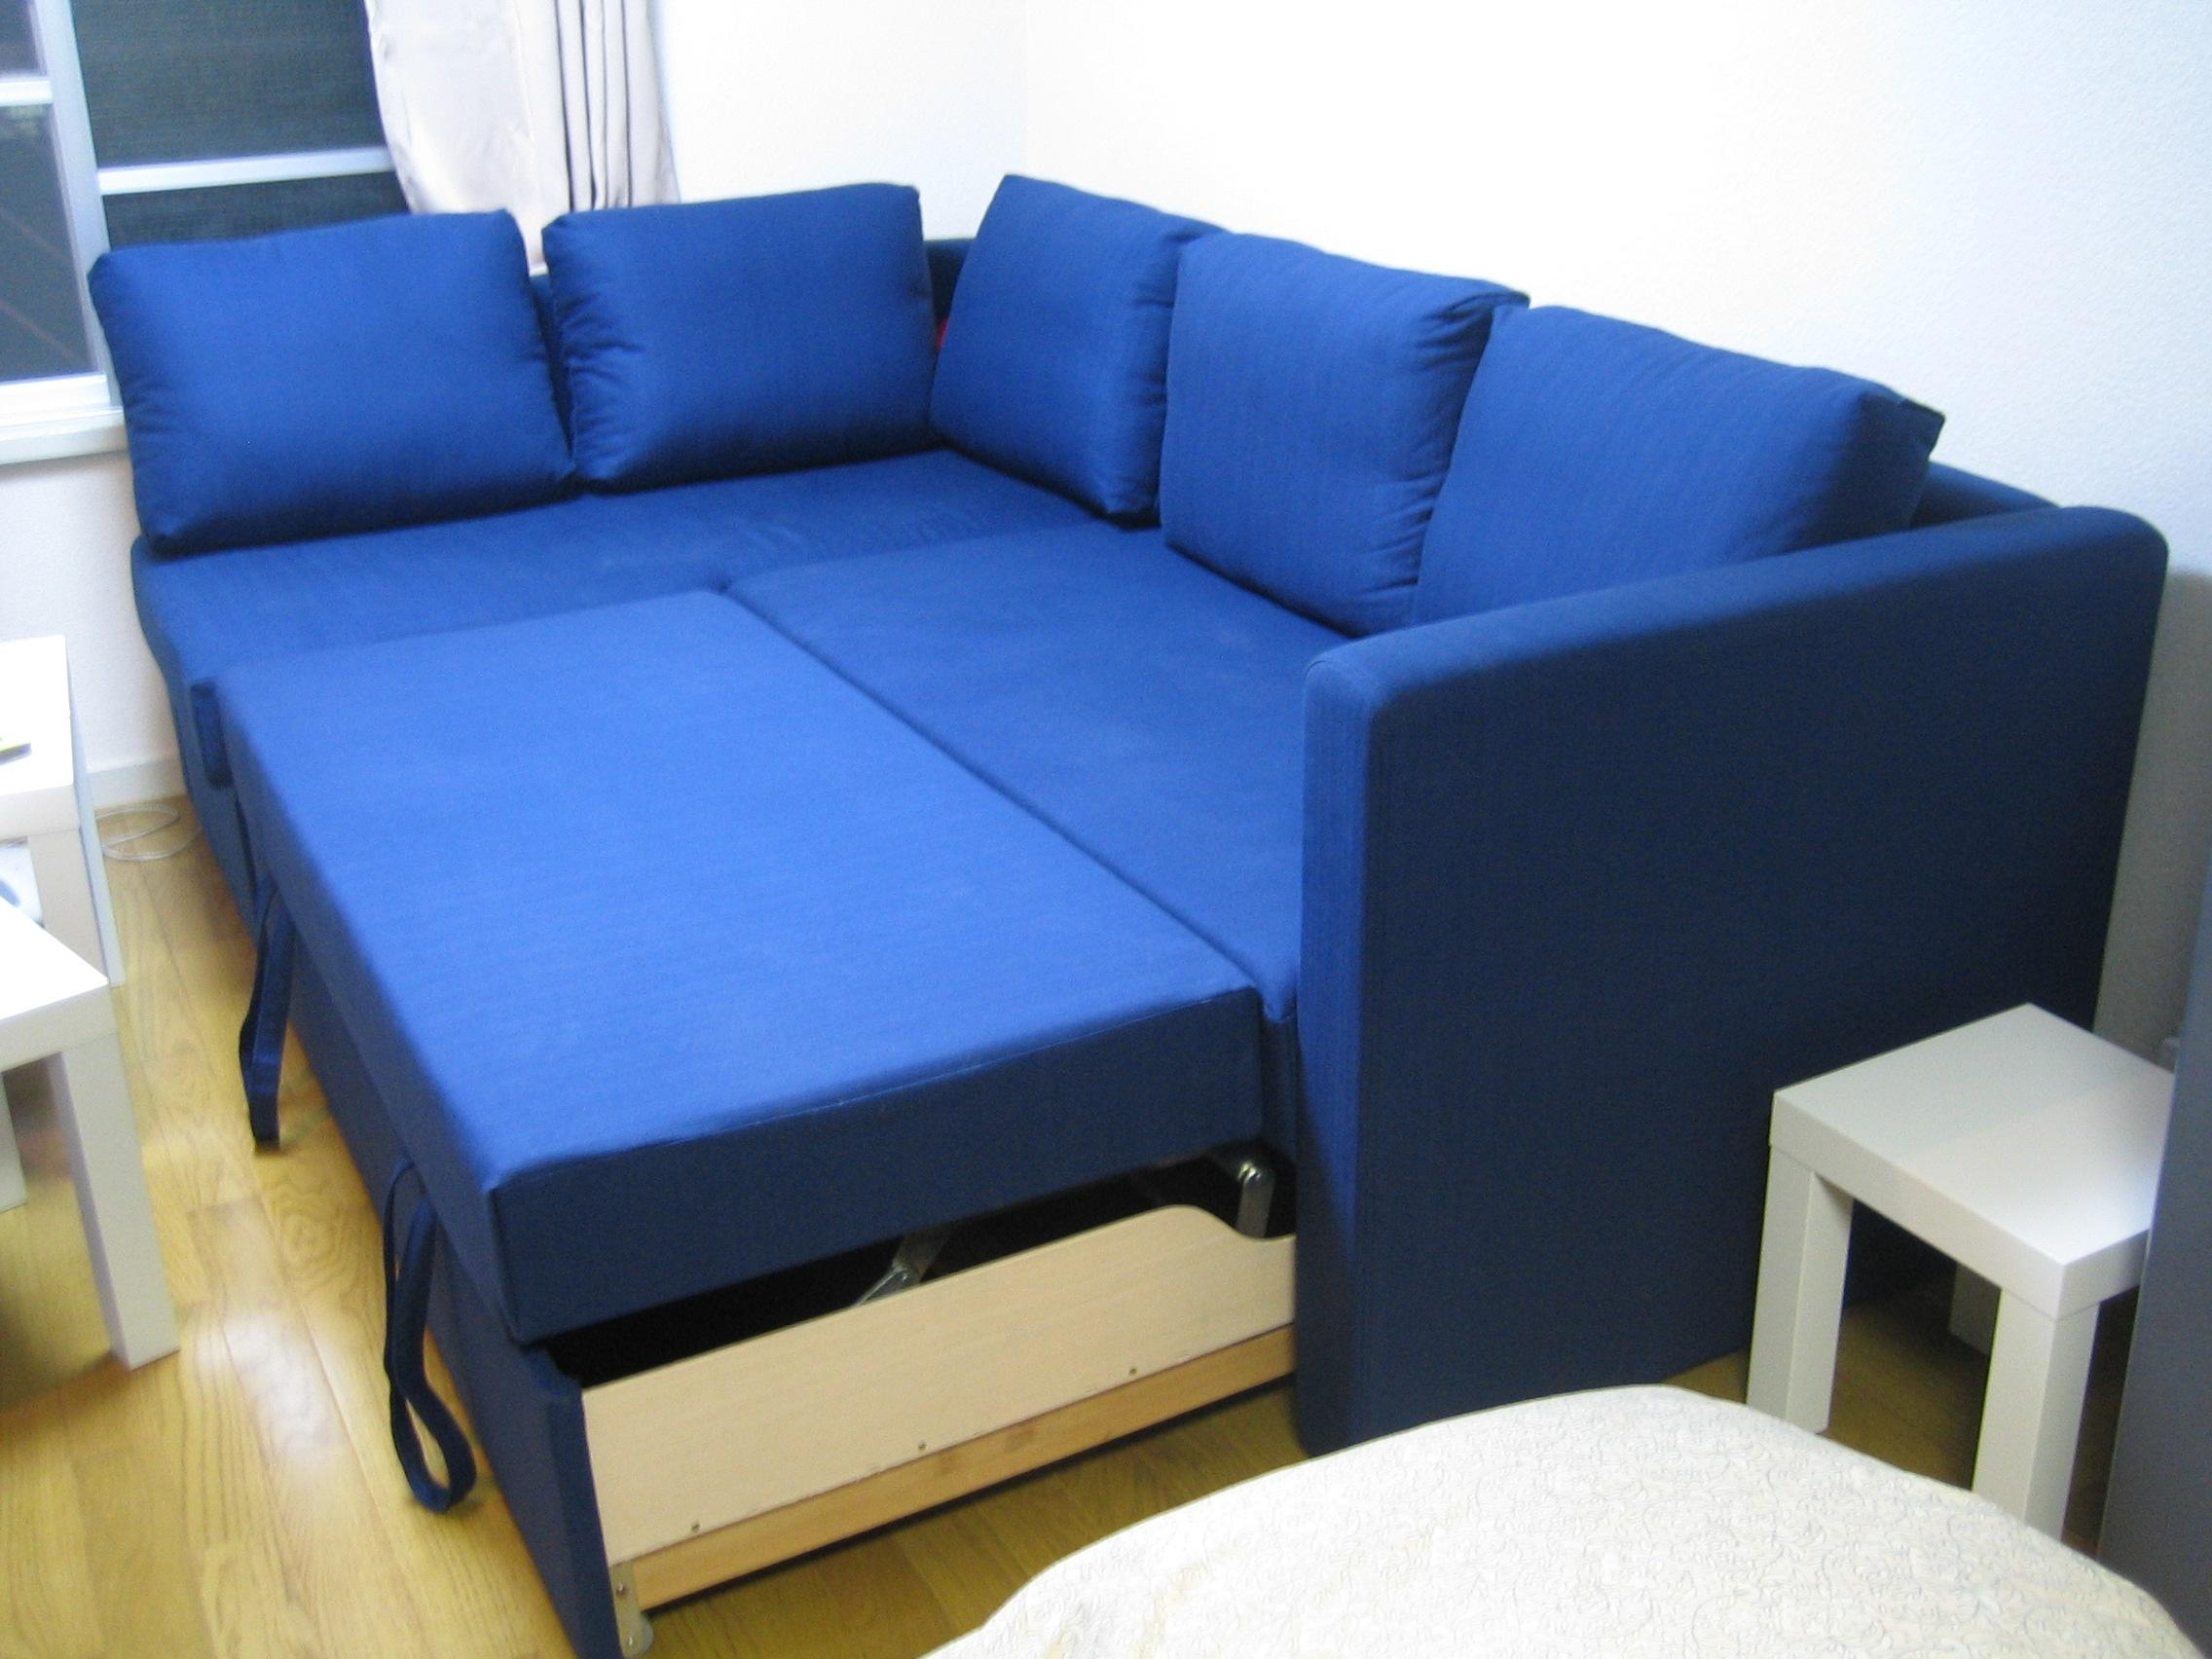 Furniture: Ikea Sofa Bed | Ikea Sofa Beds | Friheten Ikea Sofa Bed Pertaining To Ikea Storage Sofa Bed (Image 13 of 20)